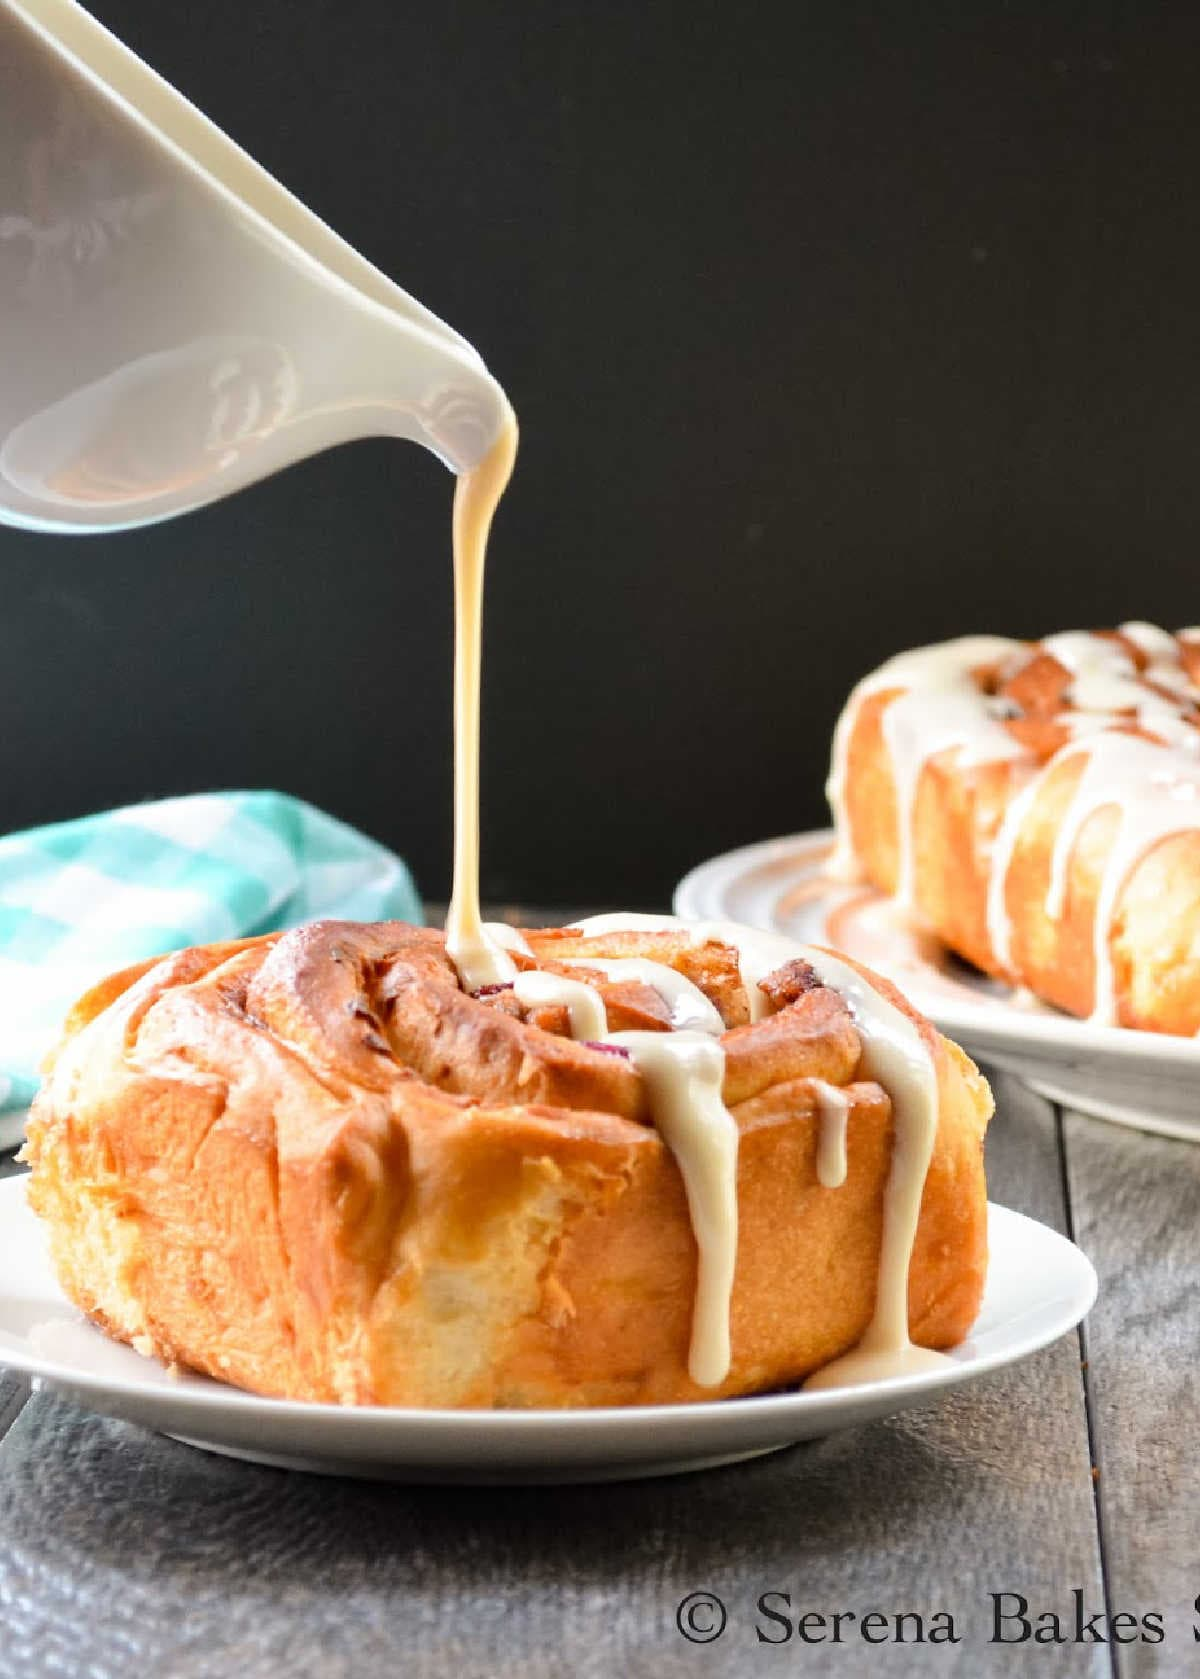 Blueberry Bacon Cinnamon Rolls on a white plate being drizzled with Maple Cream Cheese Frosting.